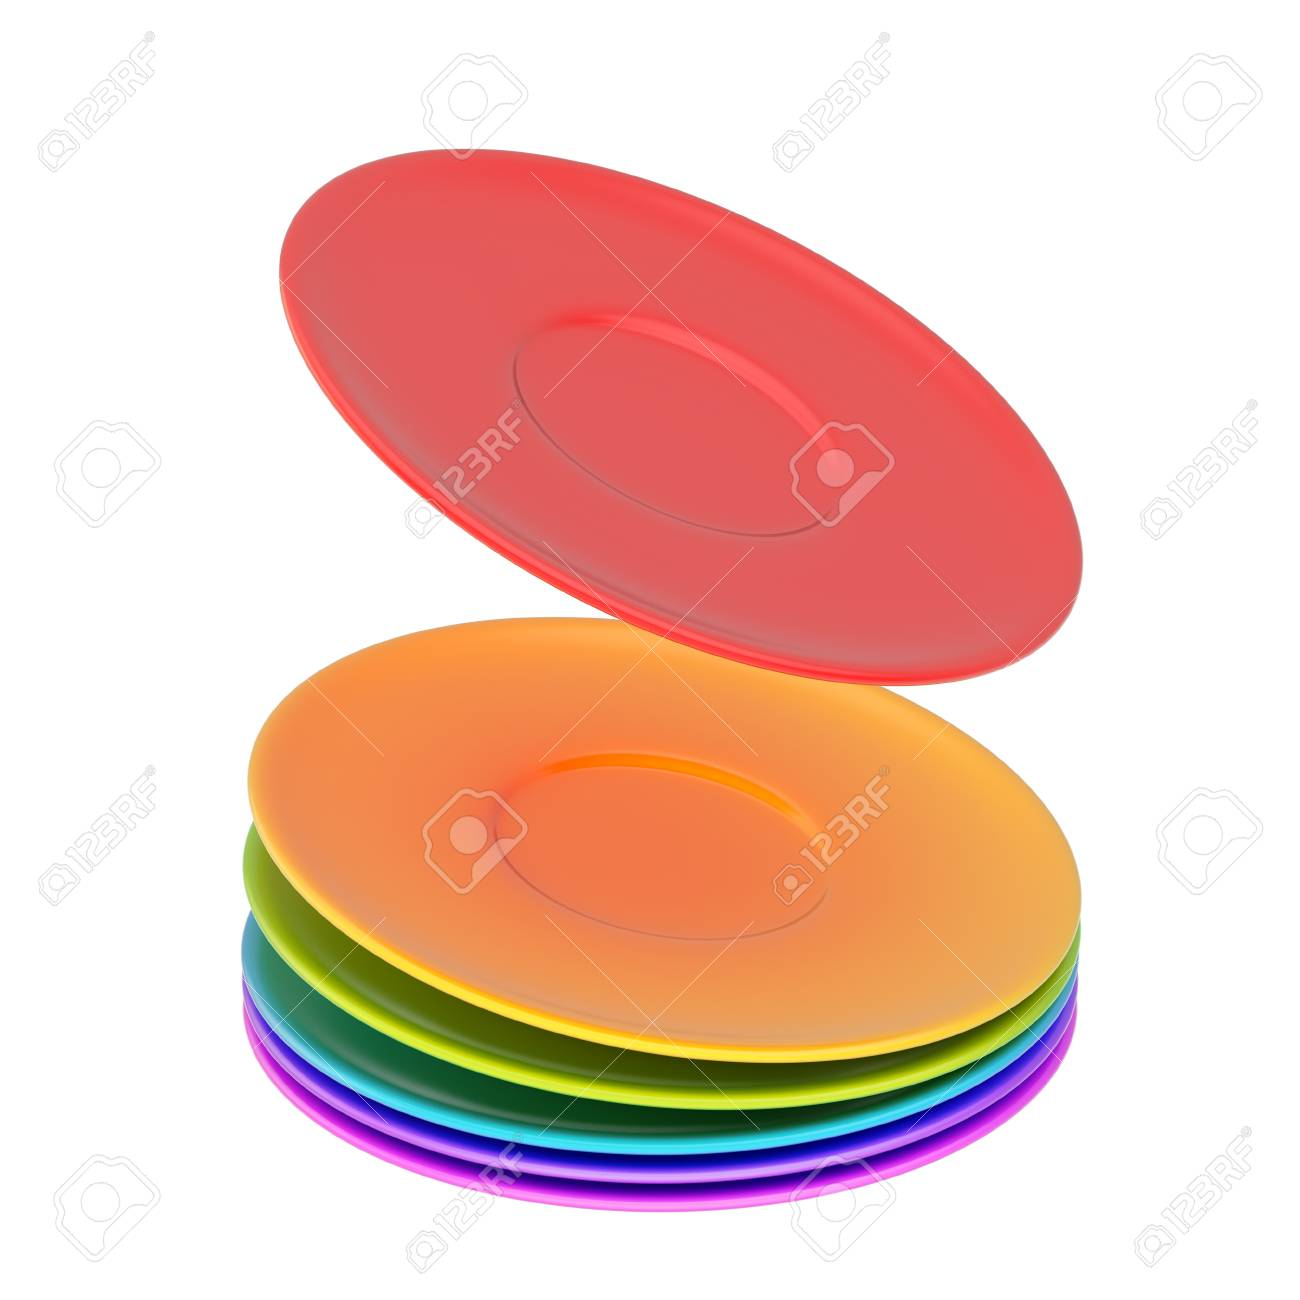 Dynamic pile of colorful ceramic plates isolated over the white background Stock Photo - 28670517  sc 1 st  123RF.com & Dynamic Pile Of Colorful Ceramic Plates Isolated Over The White ...